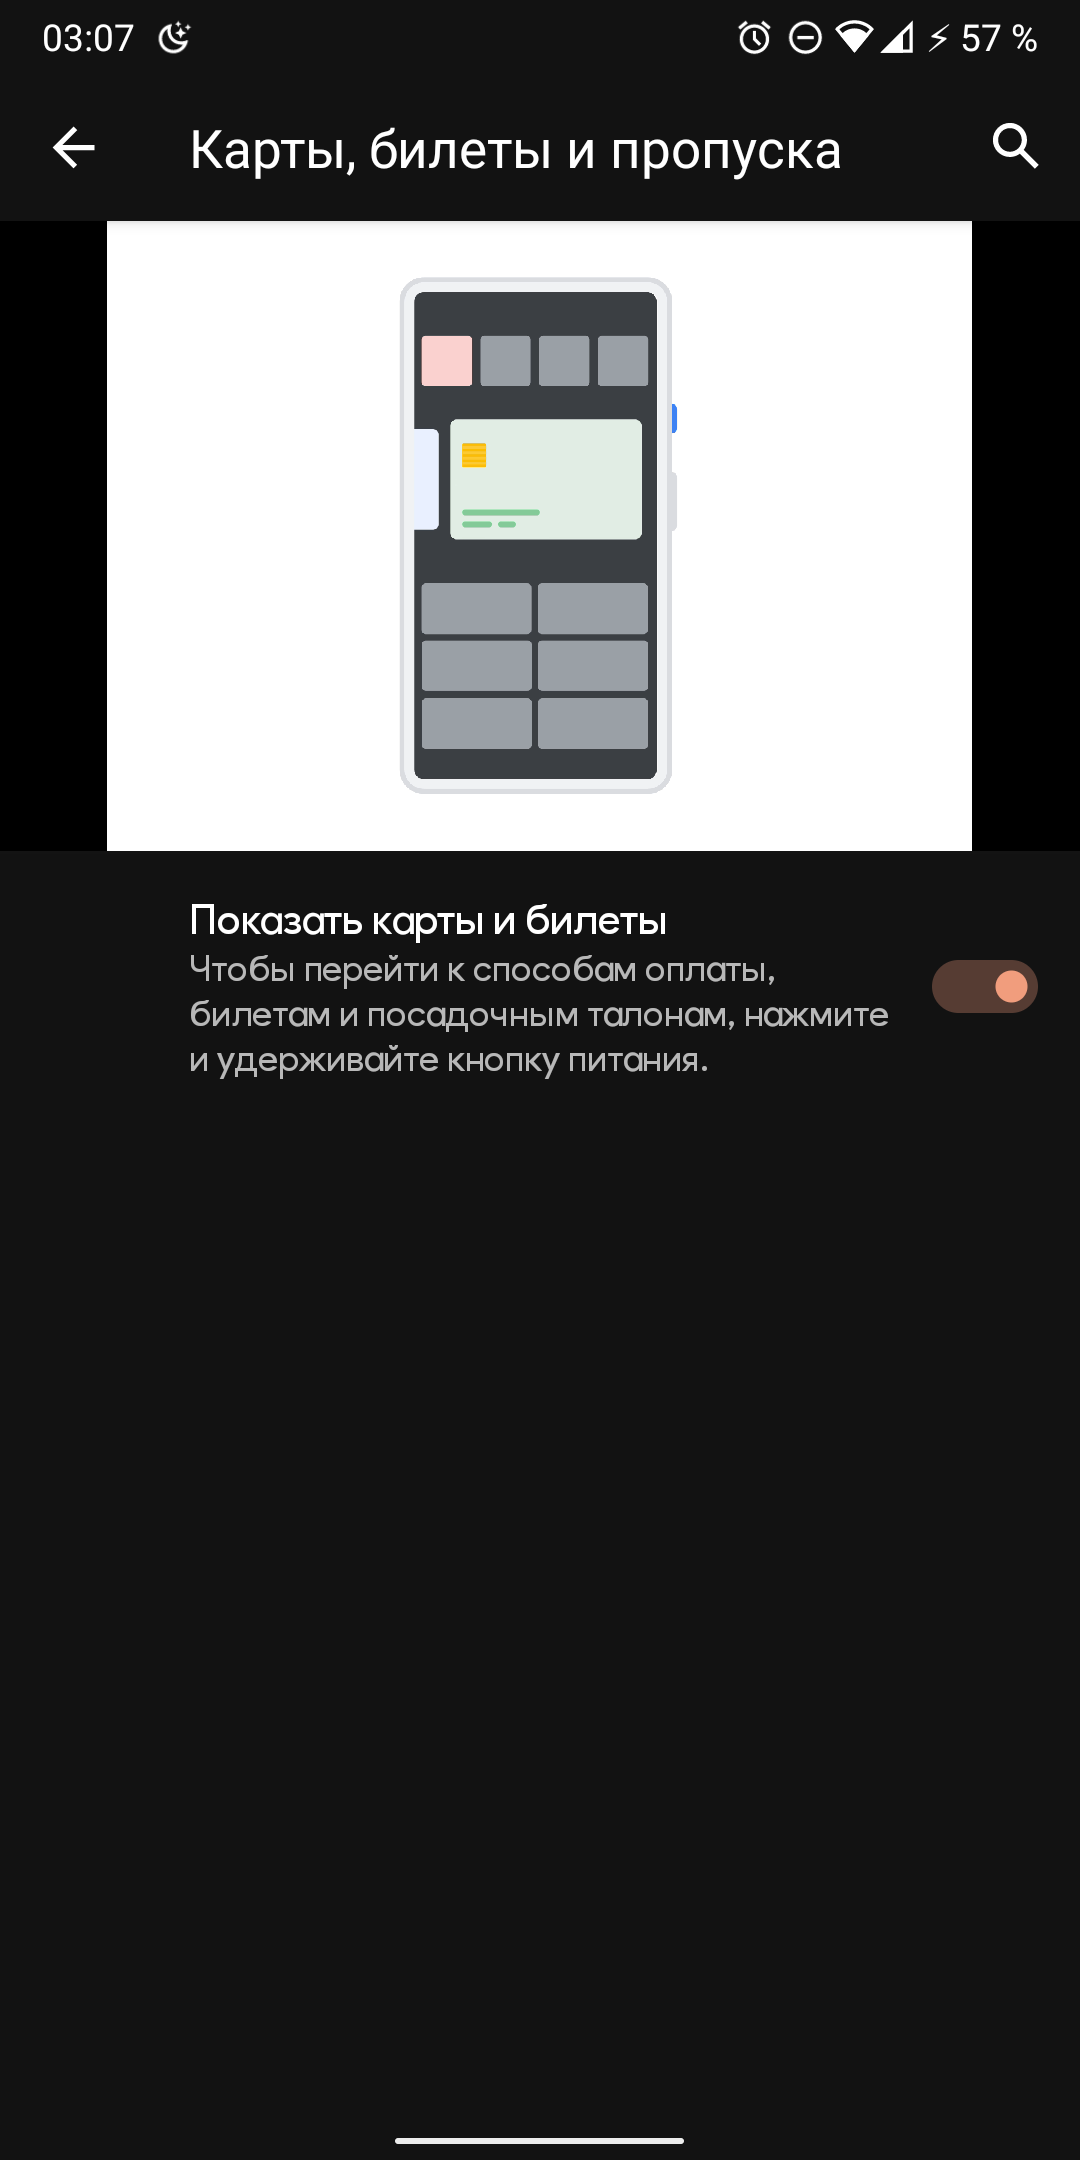 Screenshot_20210308-030720_Настройки.png